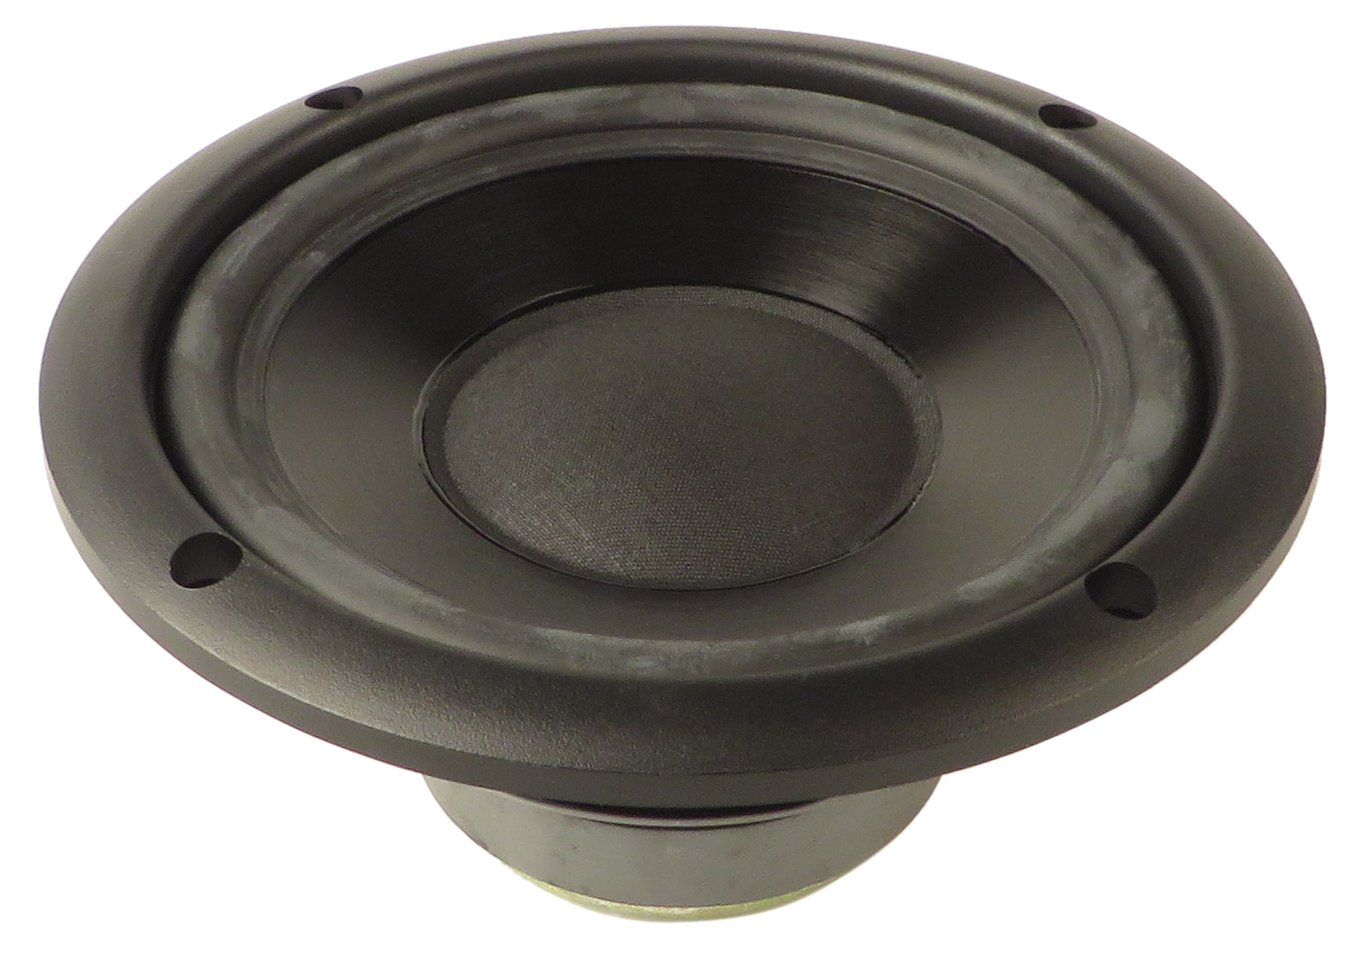 Tannoy 9700 0071 Woofer for Proto-J 9700 0071